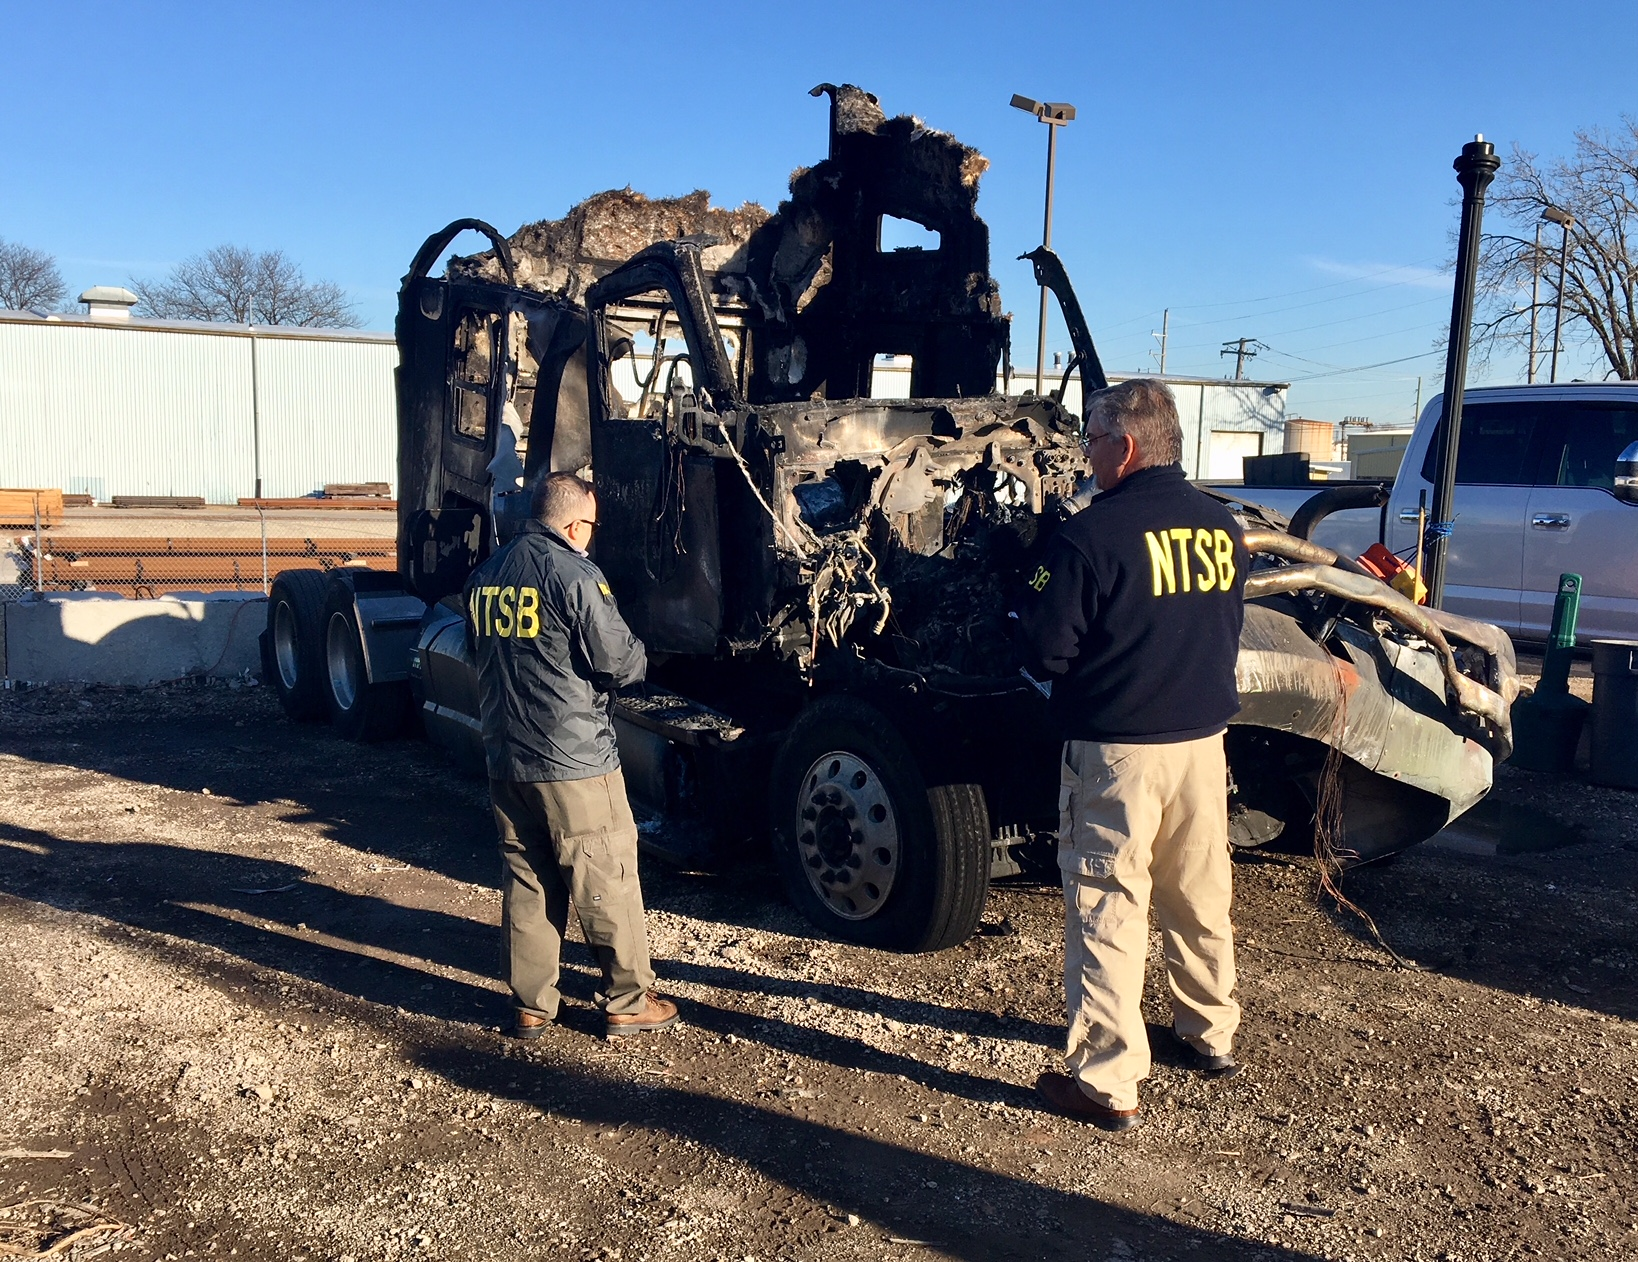 NTSB investigators examining the damaged and burnt 2016 Kenworth truck-tractor (the Pioneer truck).